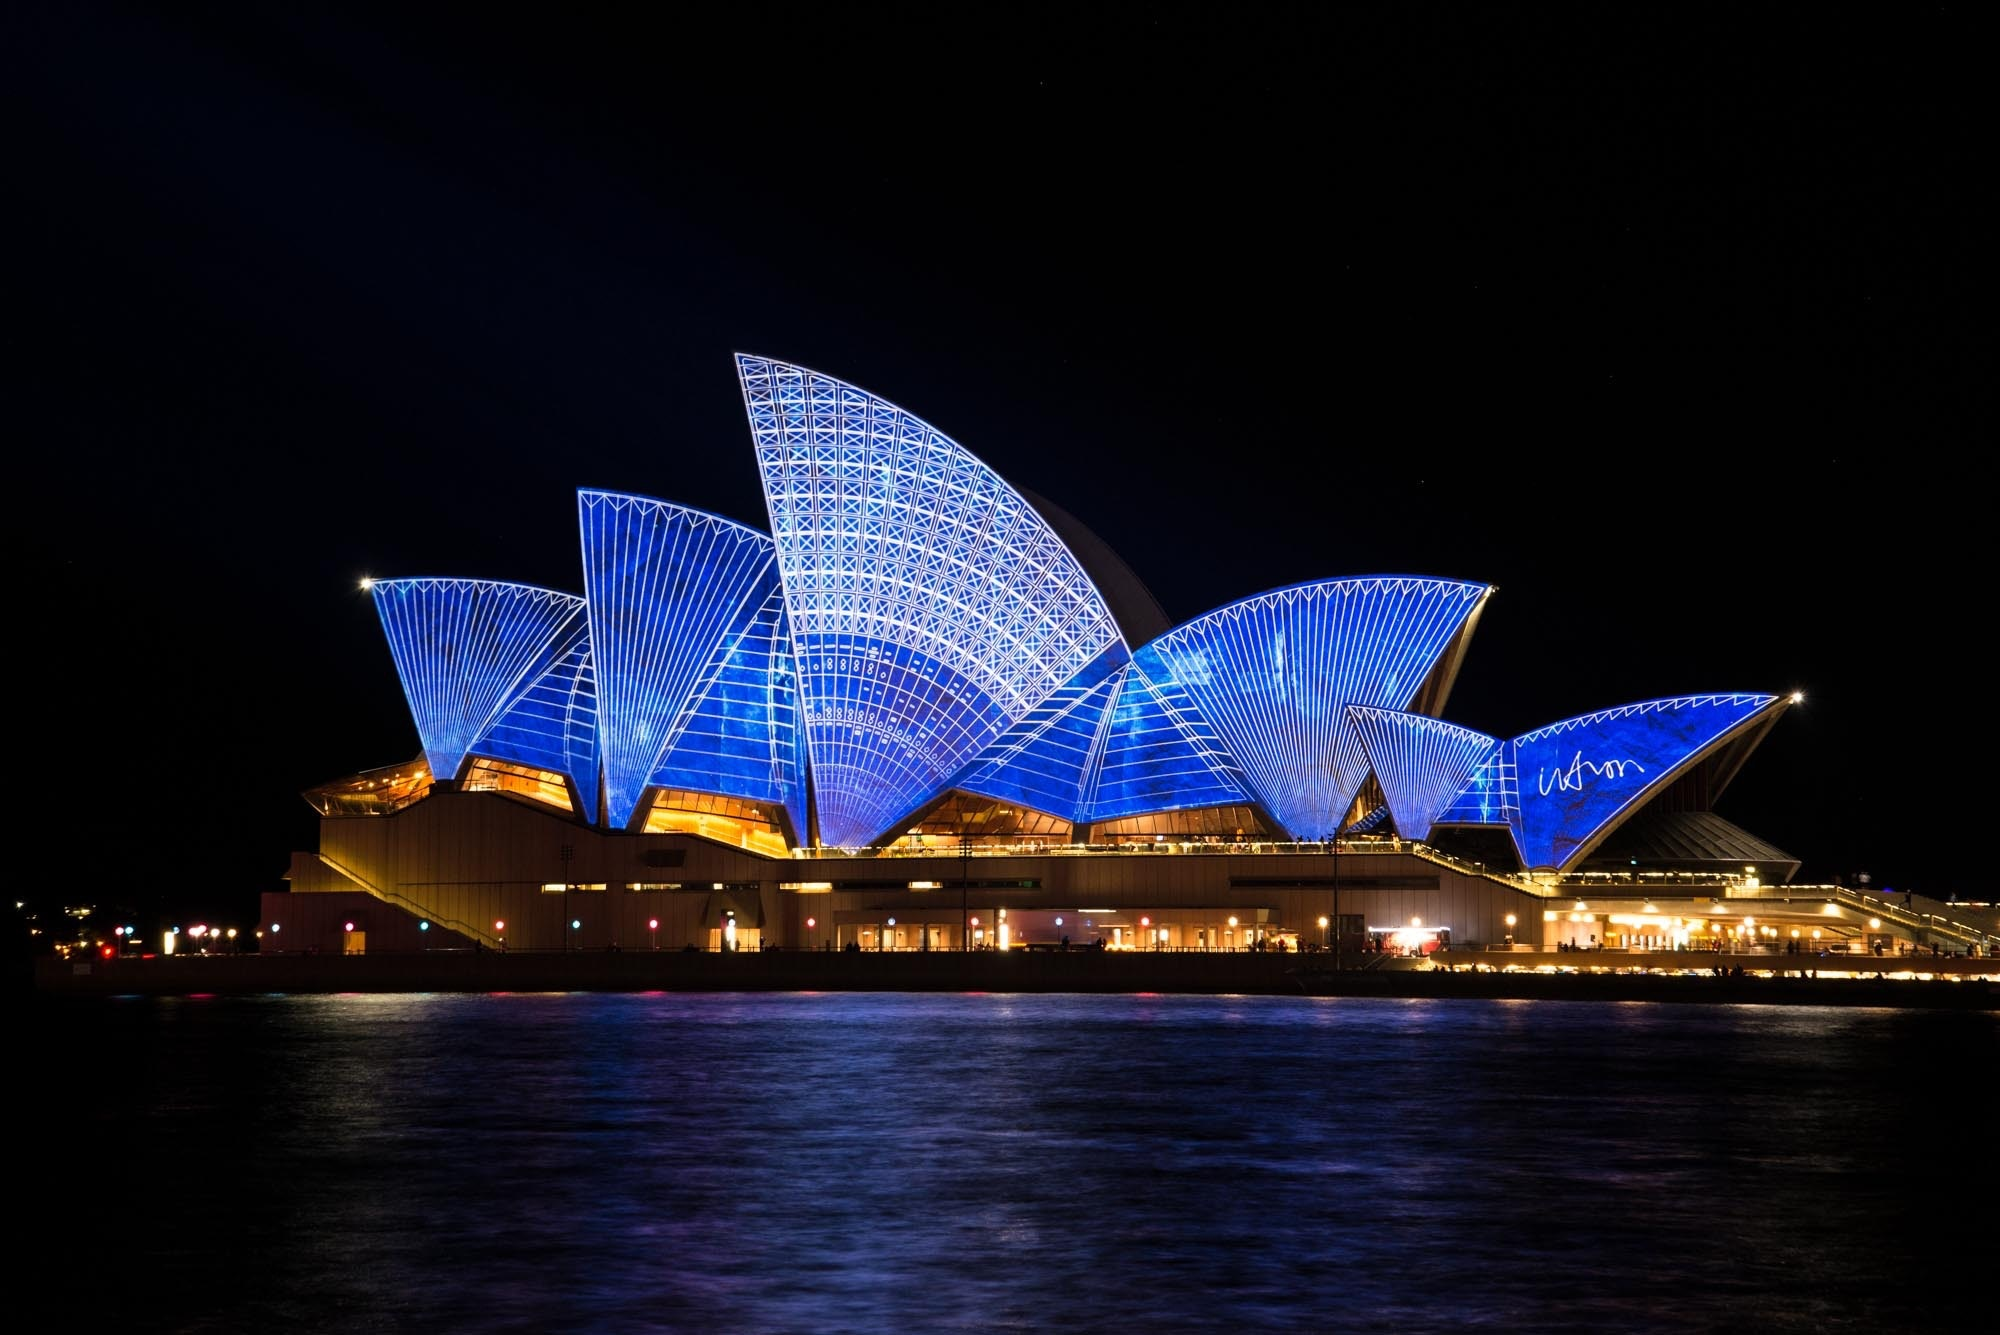 Blue lighted sydney opera house during nighttime photo